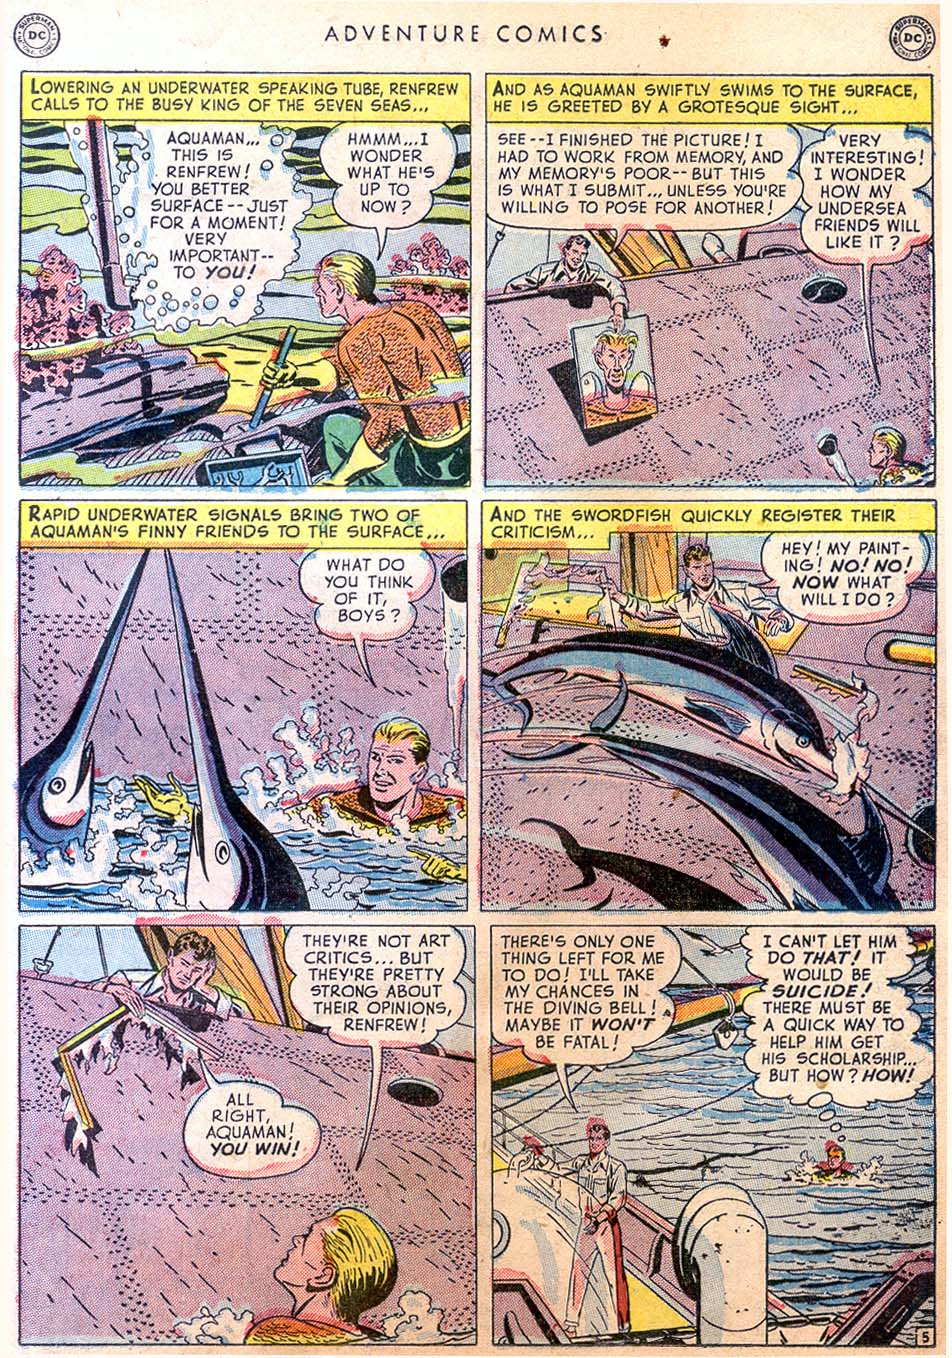 Read online Adventure Comics (1938) comic -  Issue #158 - 35